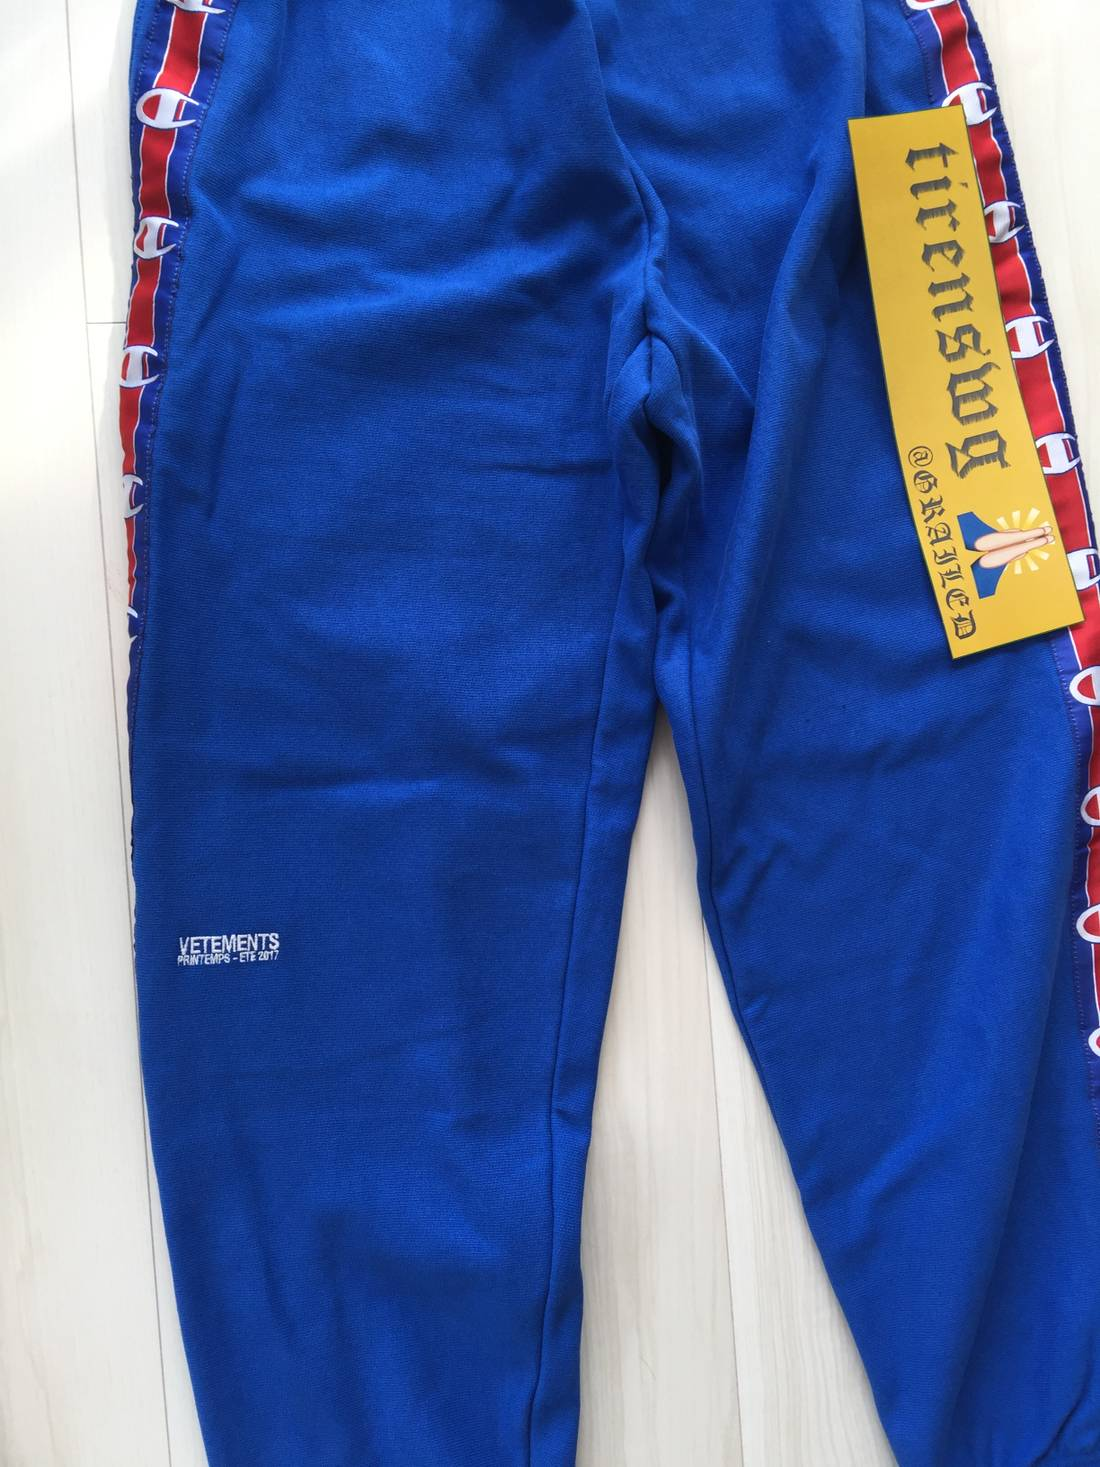 550b642a32ee Vetements X Champion Sweatpants Price